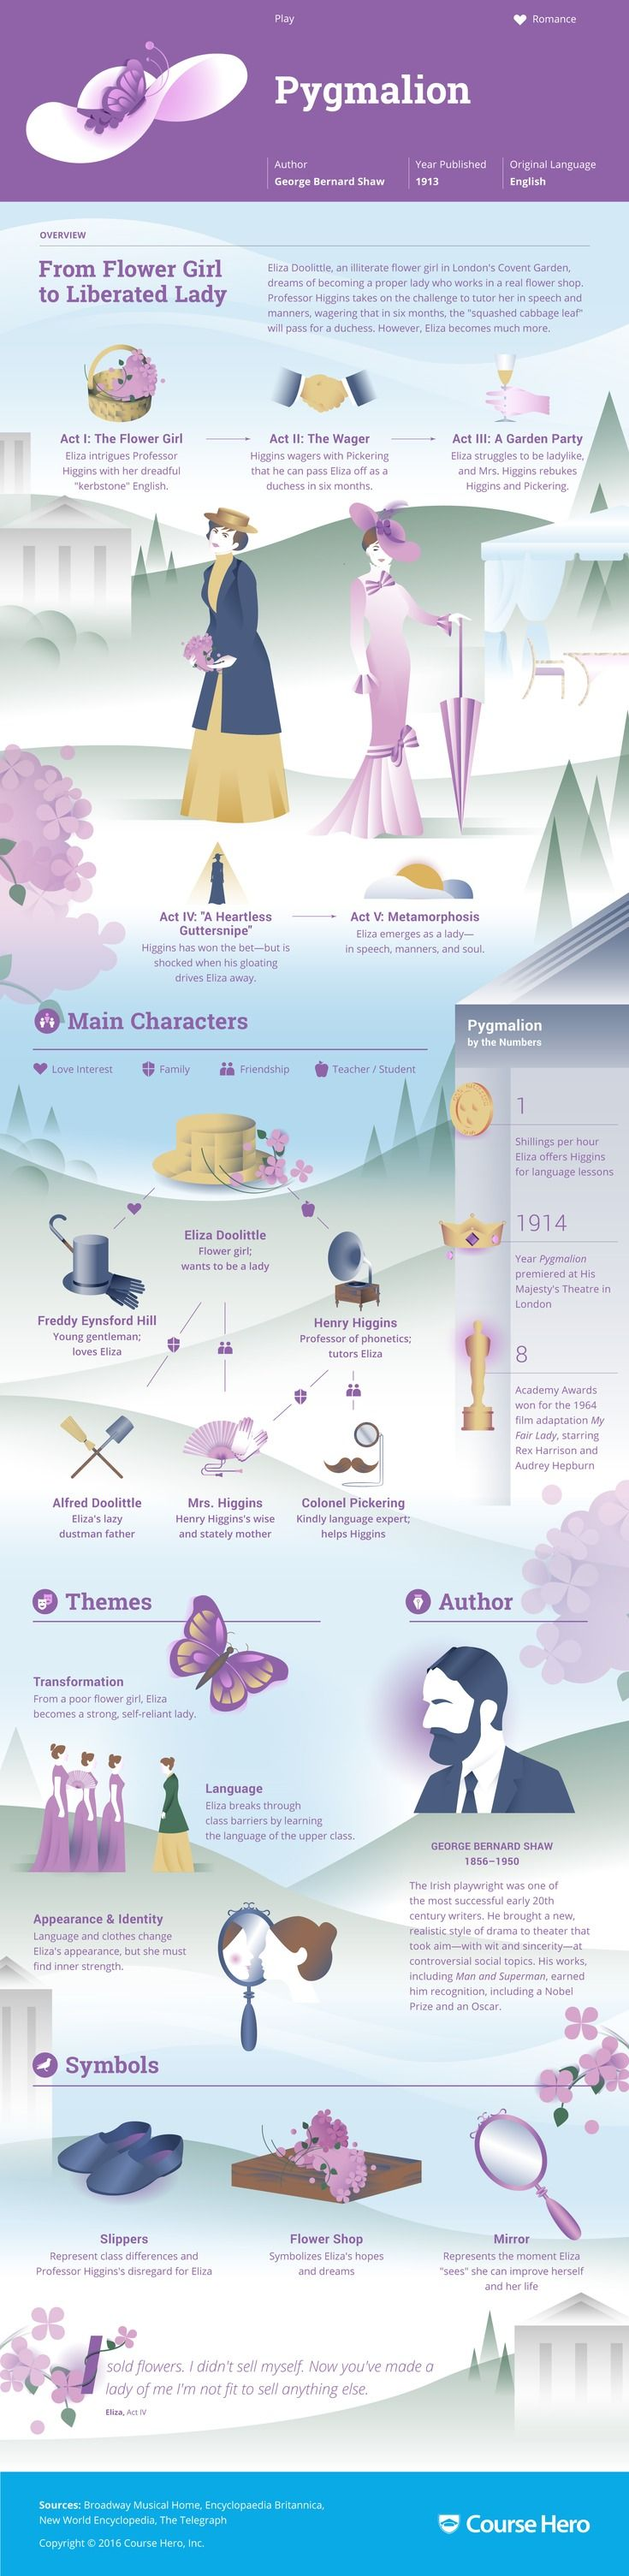 this coursehero infographic on pyg on is both visually  book summaries